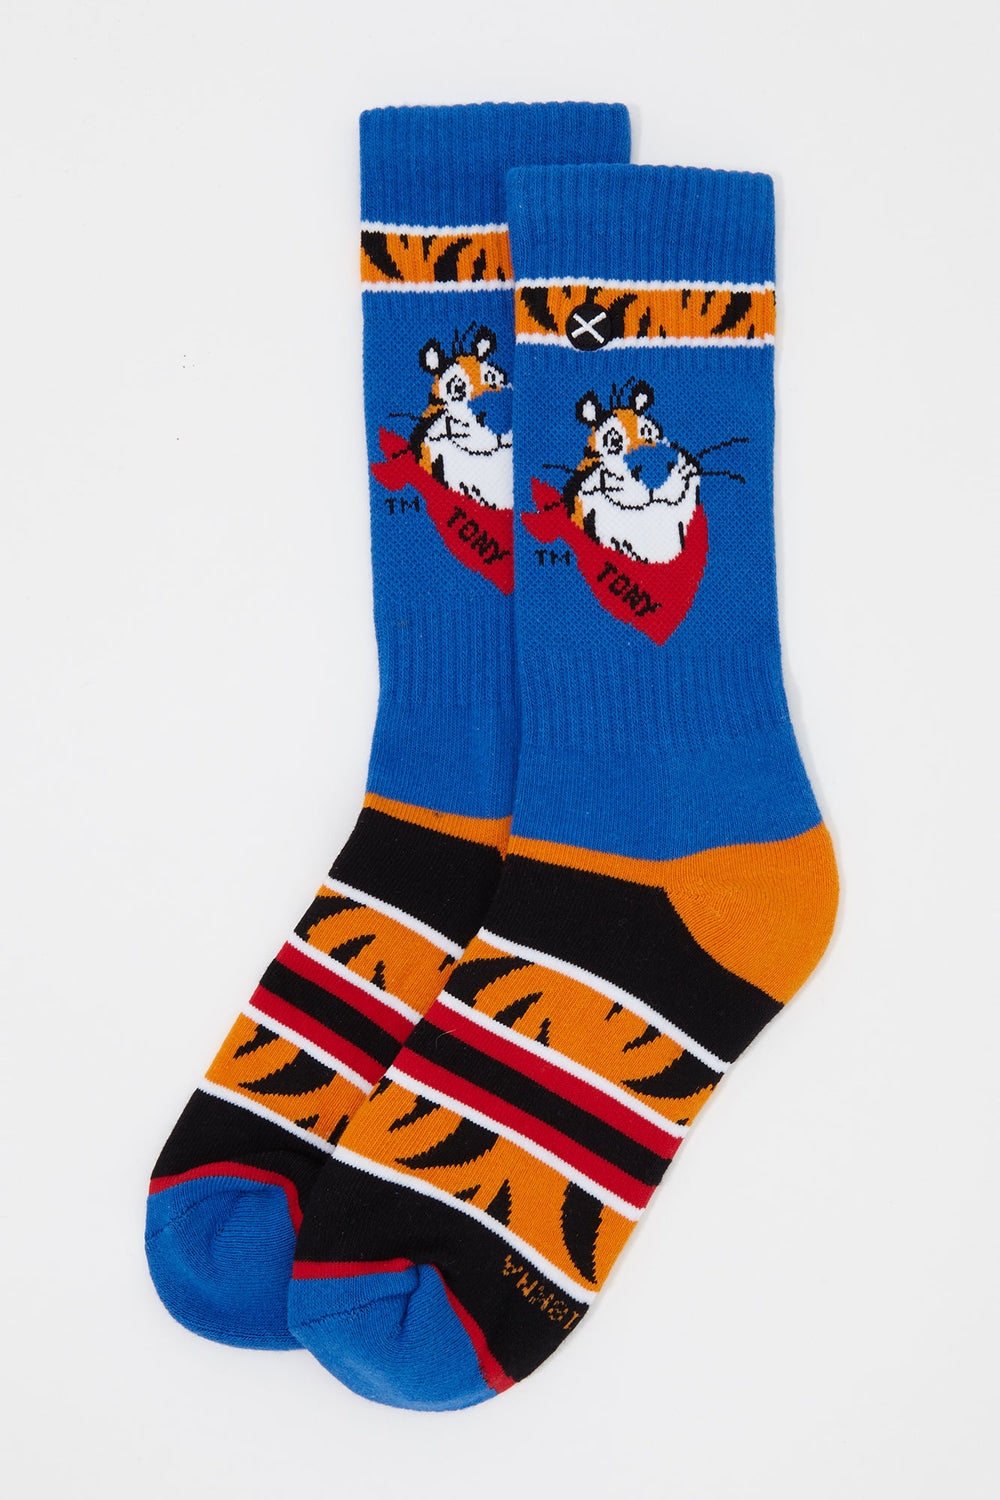 Chaussettes Frosted Flakes Odd Sox Homme Bleu